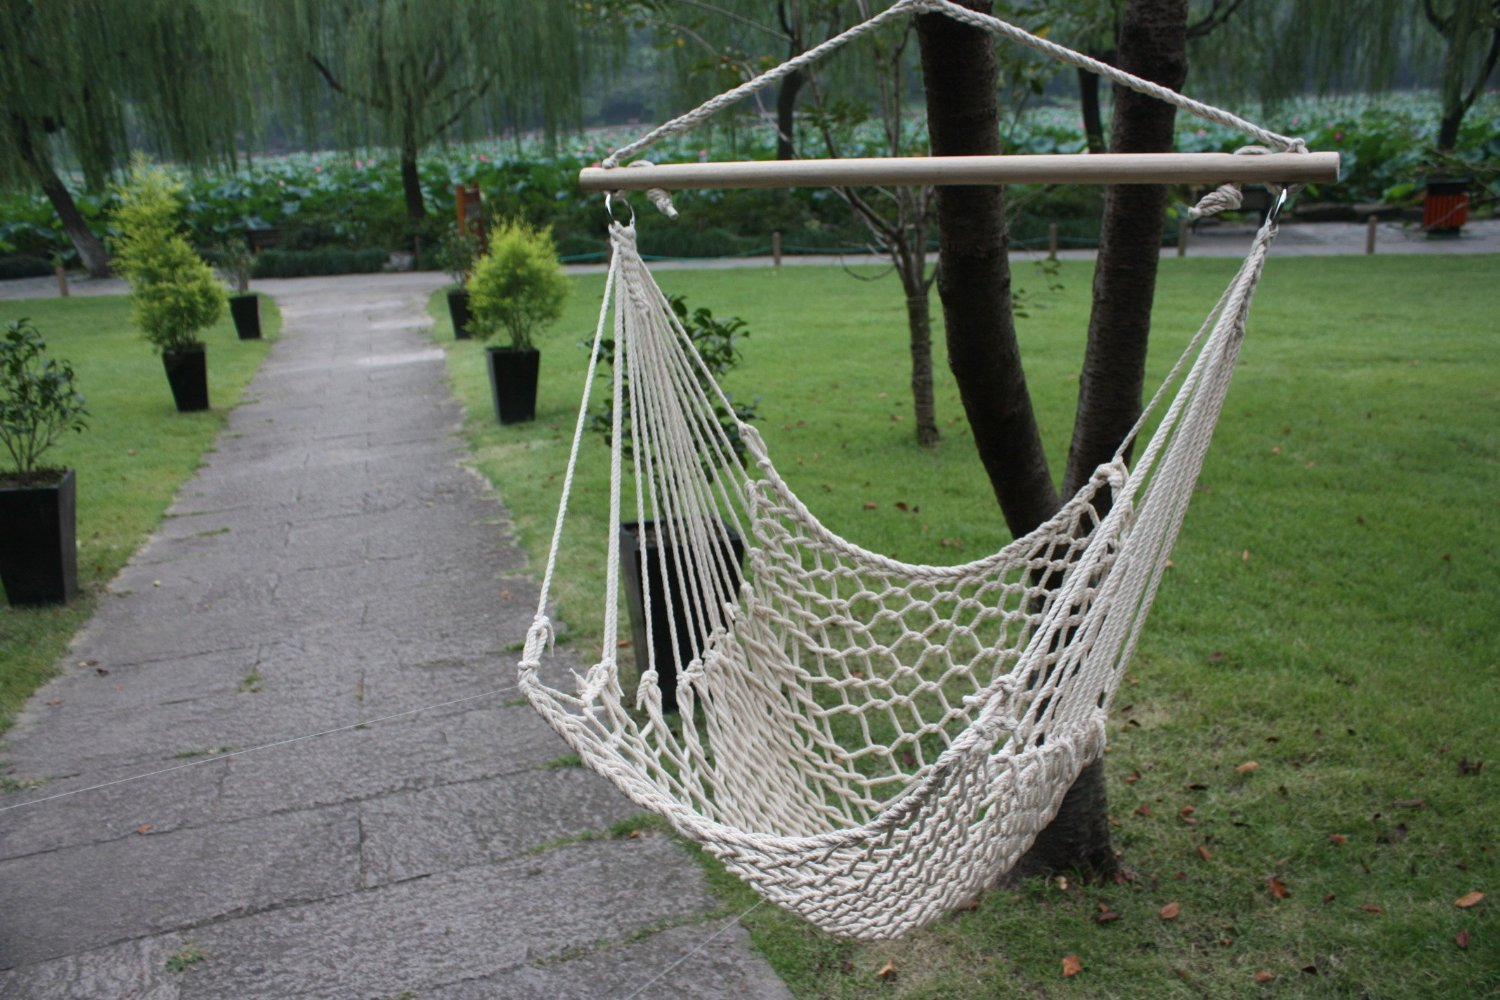 hammock cotton swing camping hanging rope new chair wooden. Black Bedroom Furniture Sets. Home Design Ideas